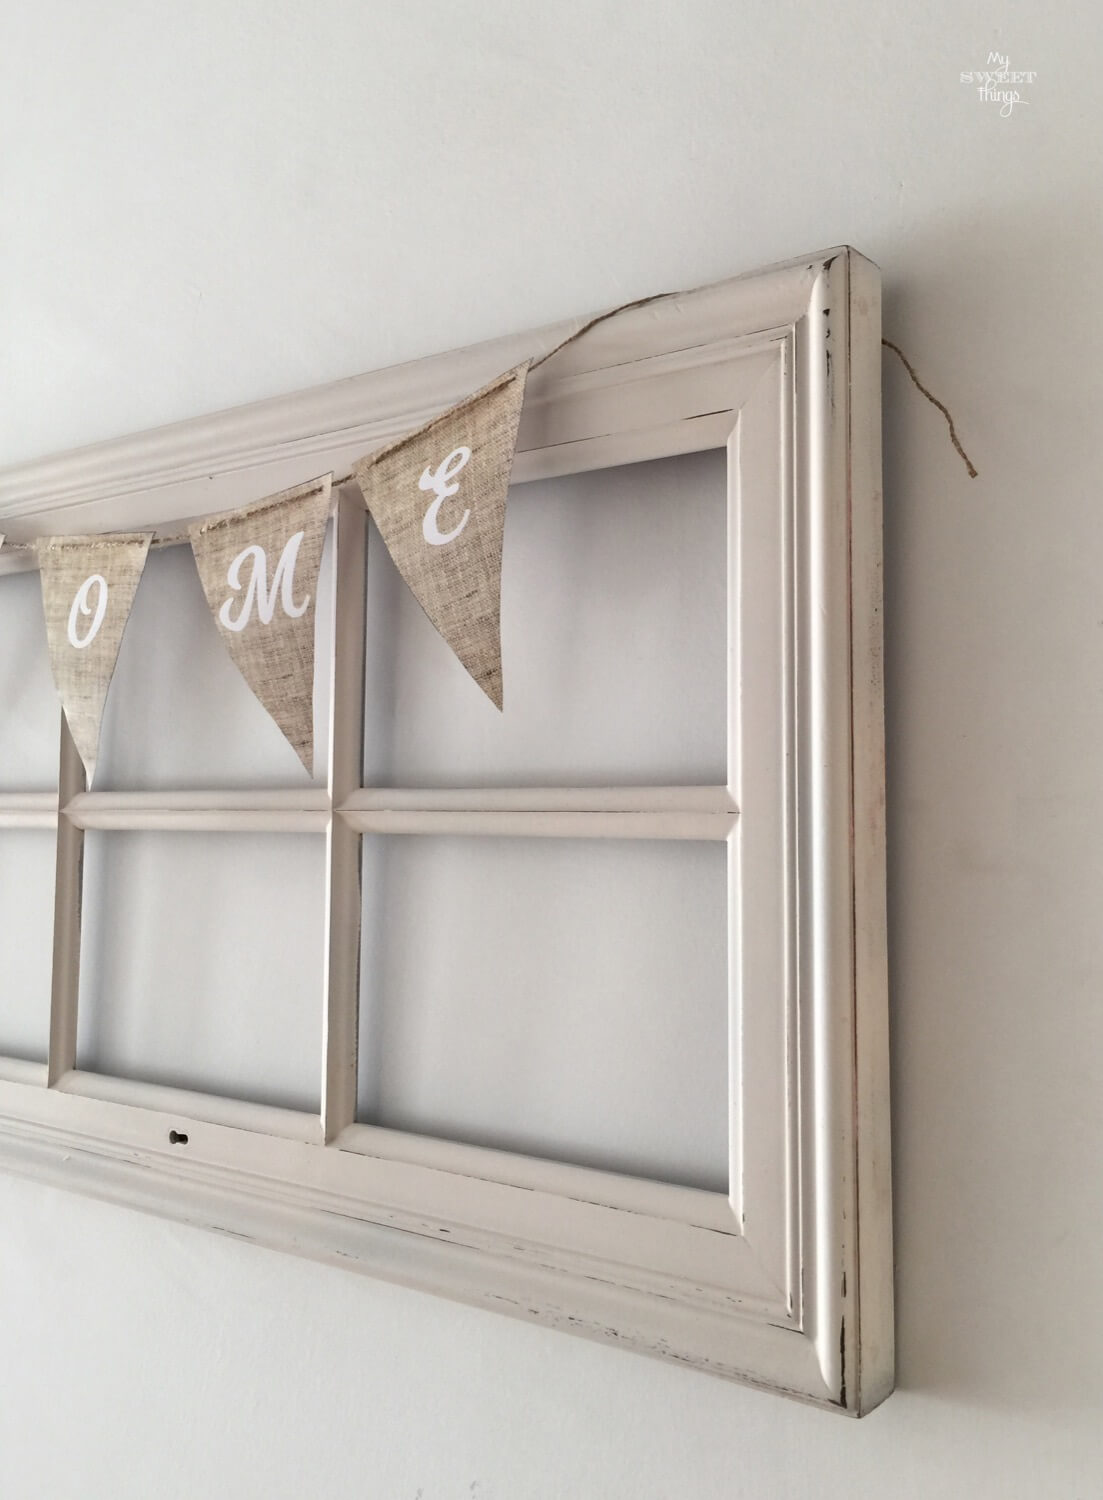 Old windows repurposed into home decor with pennant banner · Via www.seethings.net